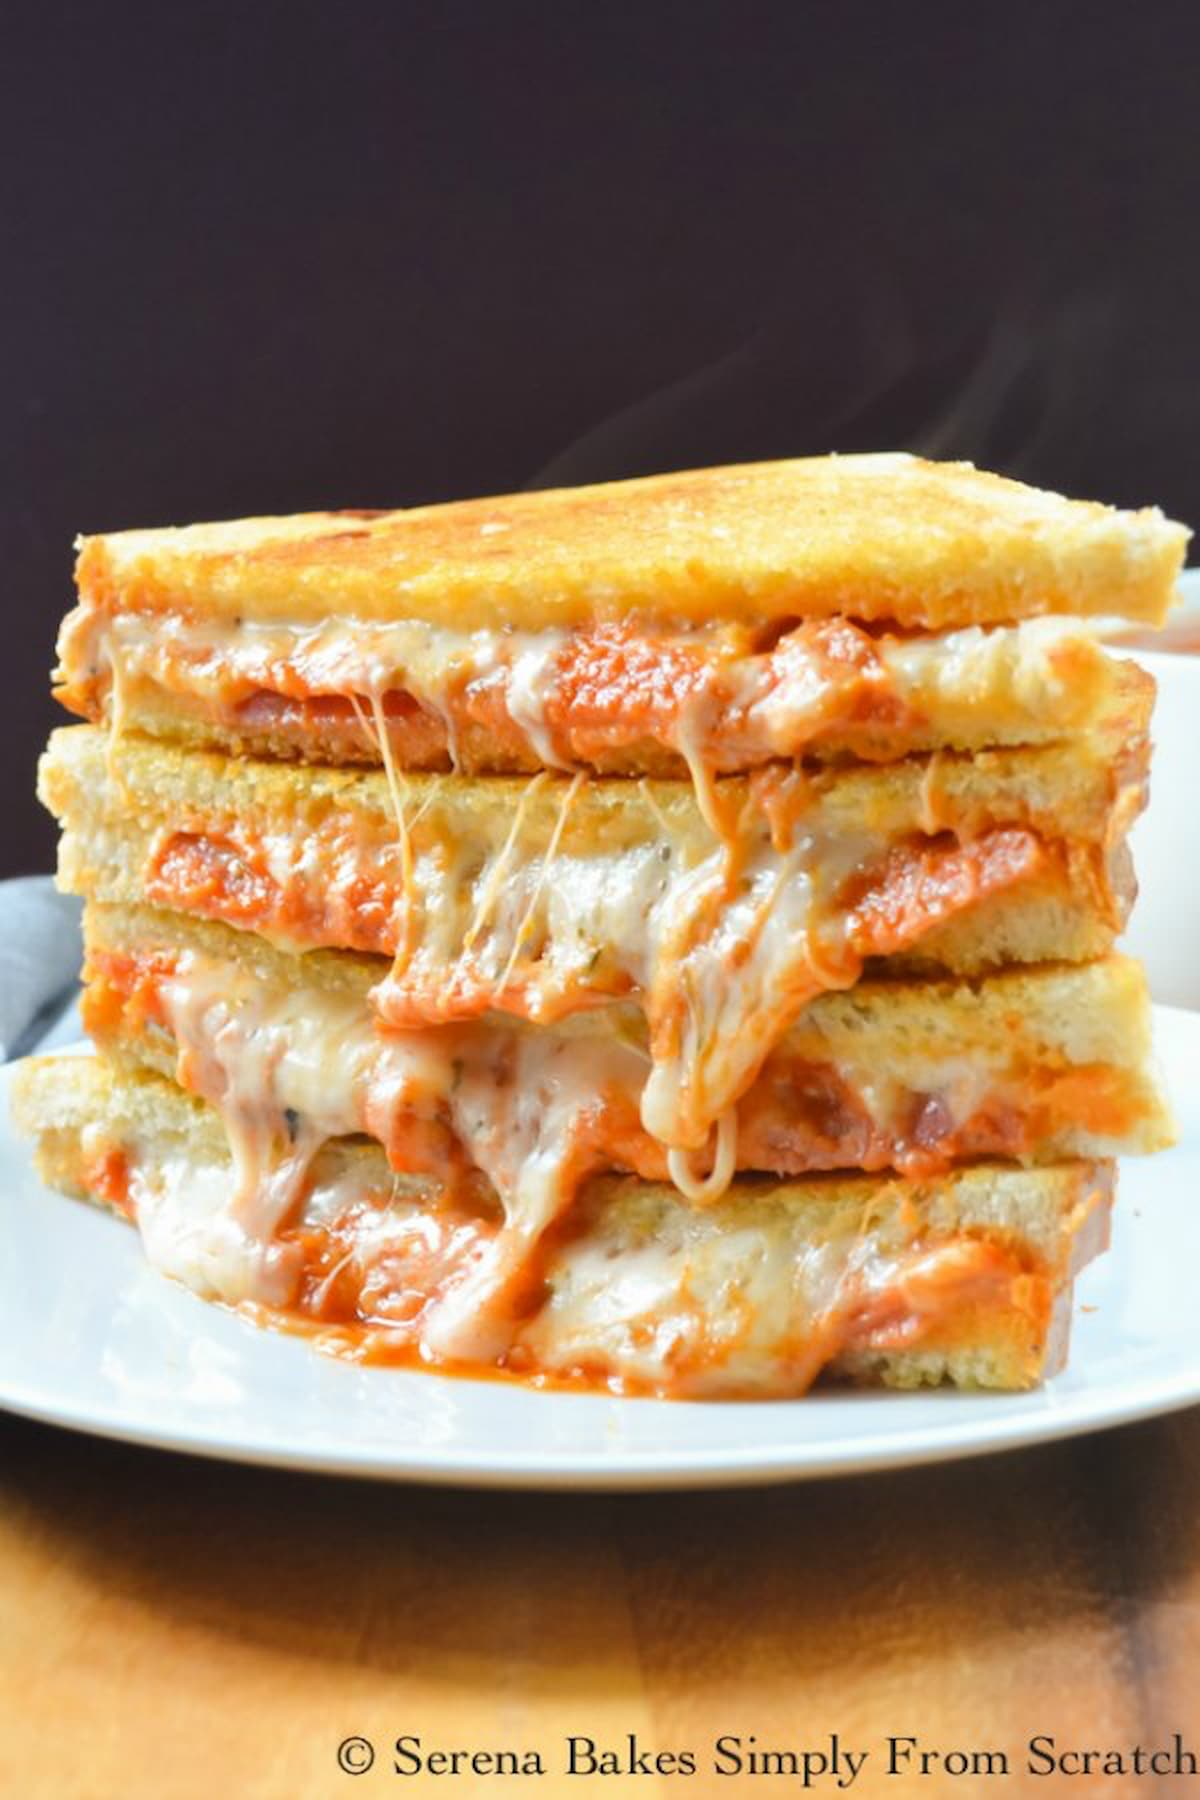 Pepperoni Pizza Grilled Cheese Sandwich stacked on a plate with Cheese pulling out of the sandwiches .